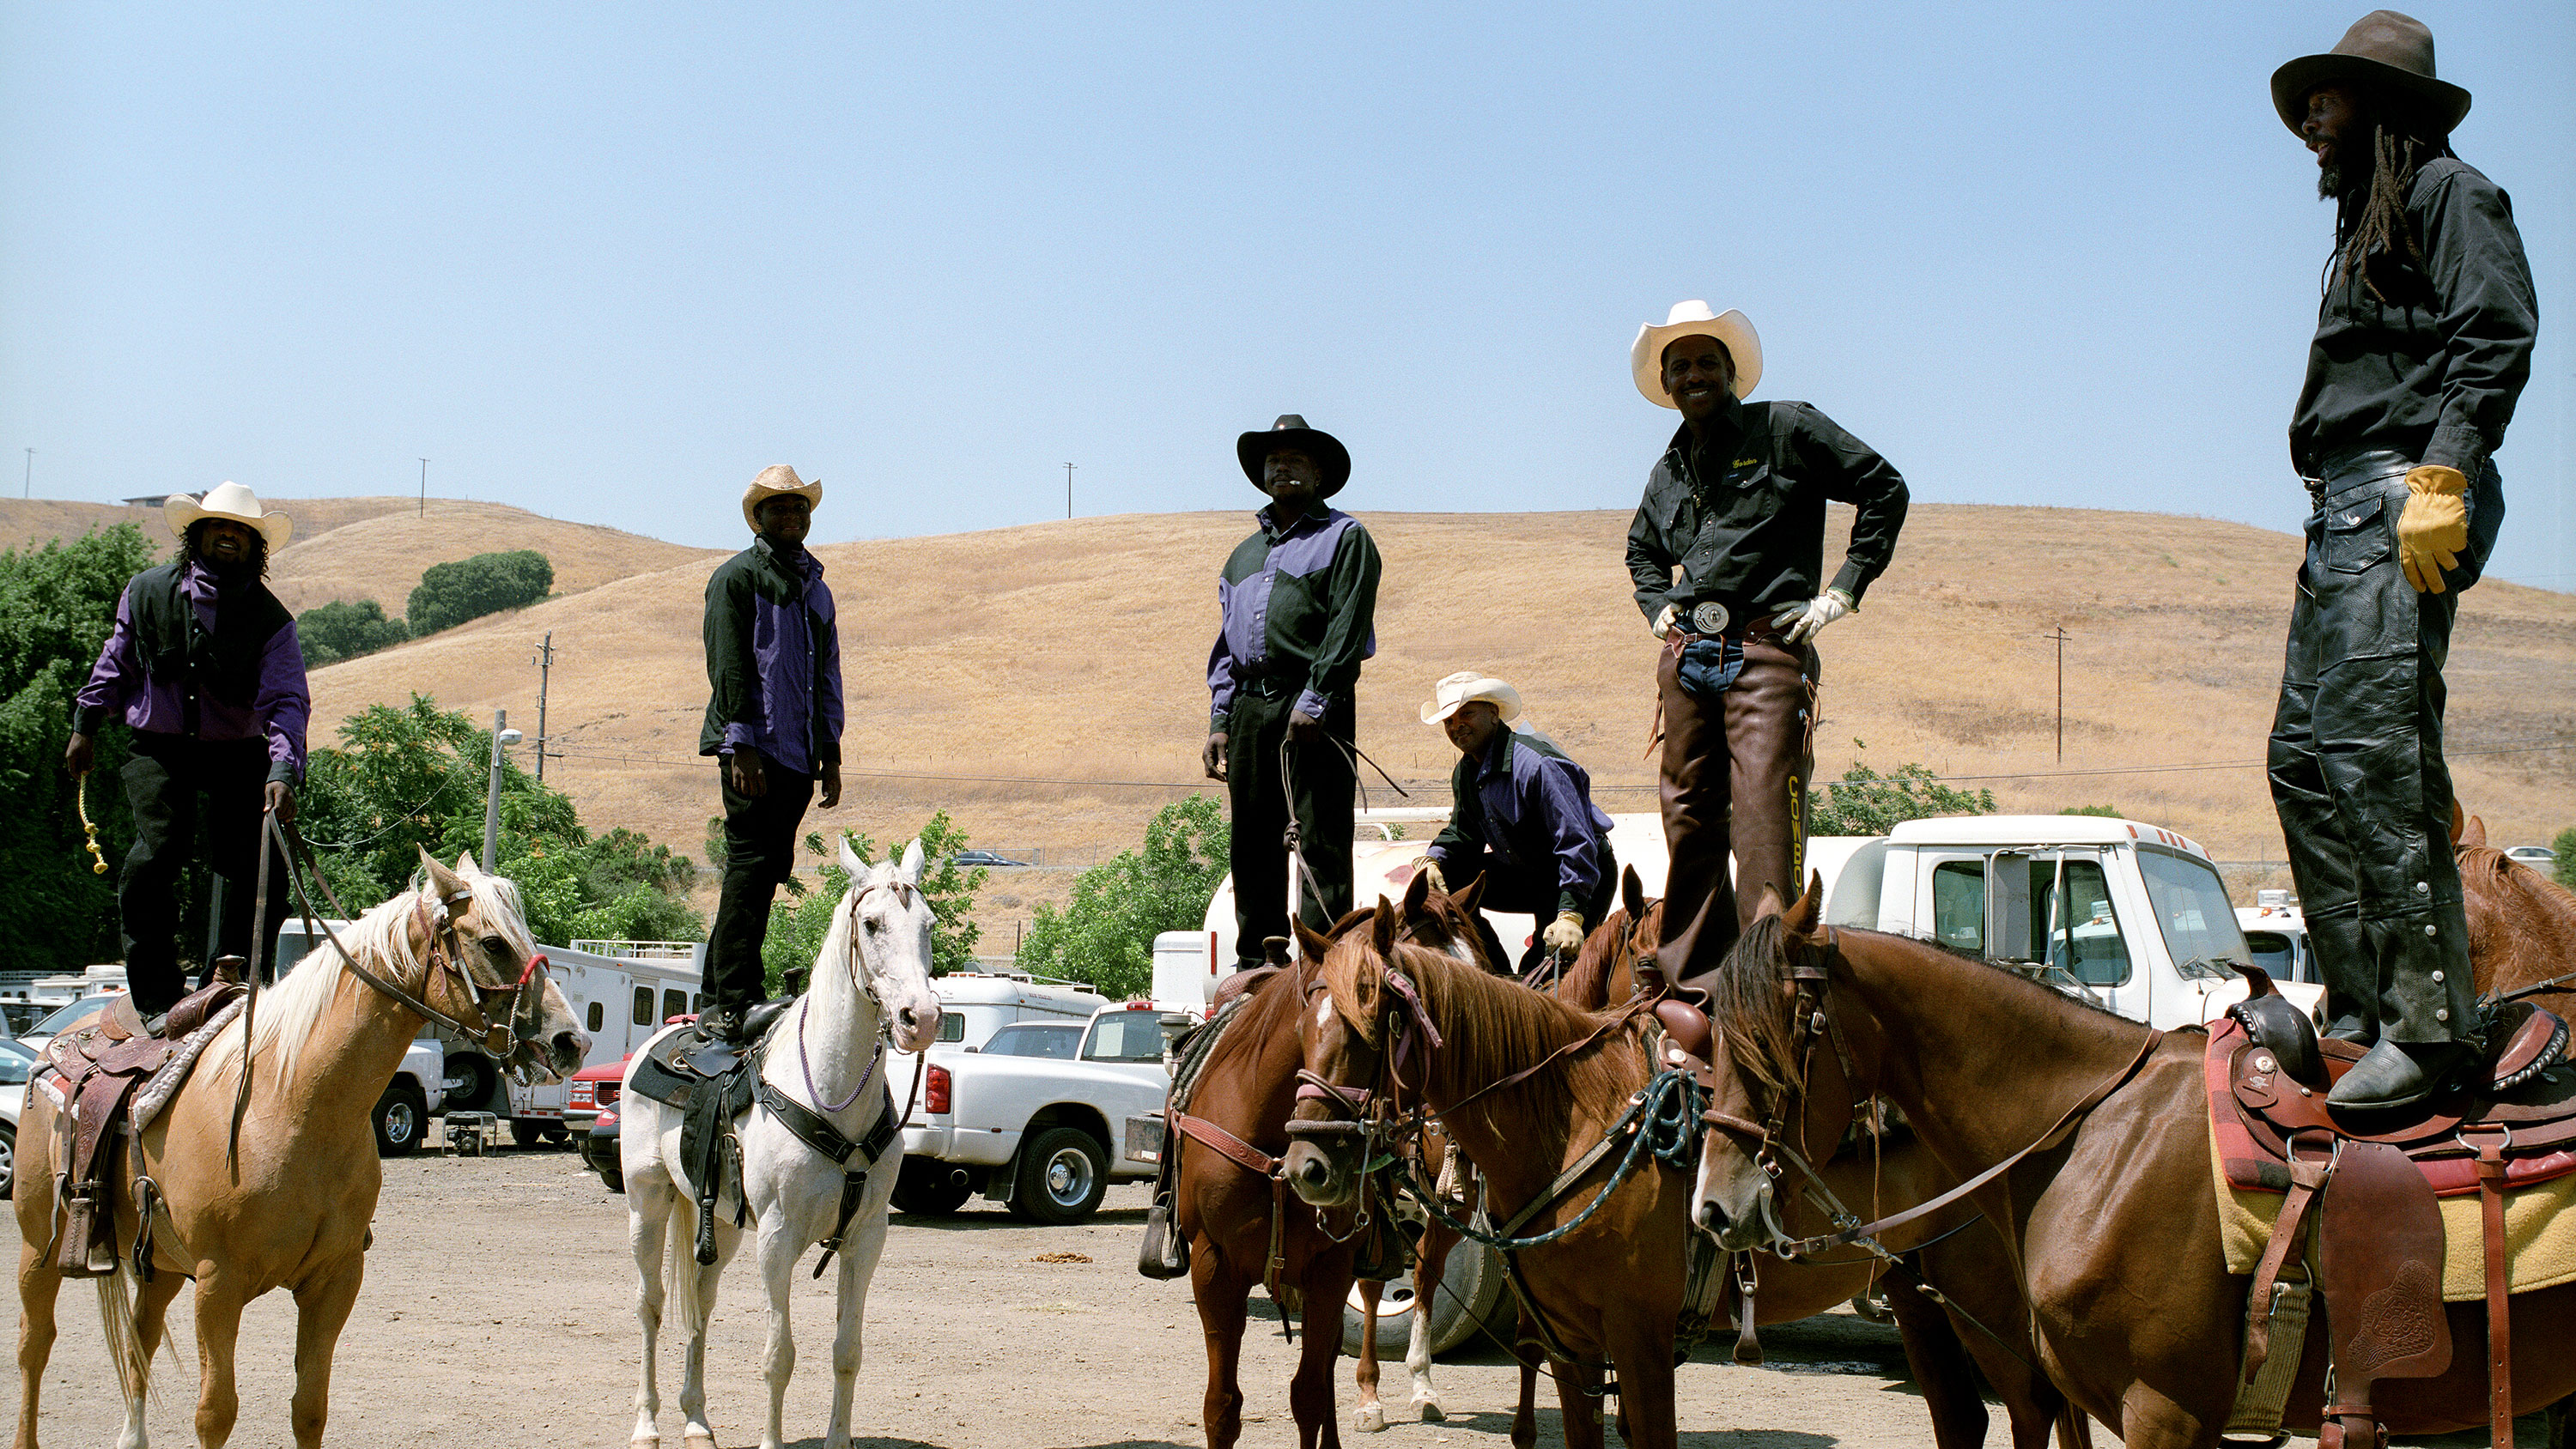 Capturing the vibrant culture of black cowboys